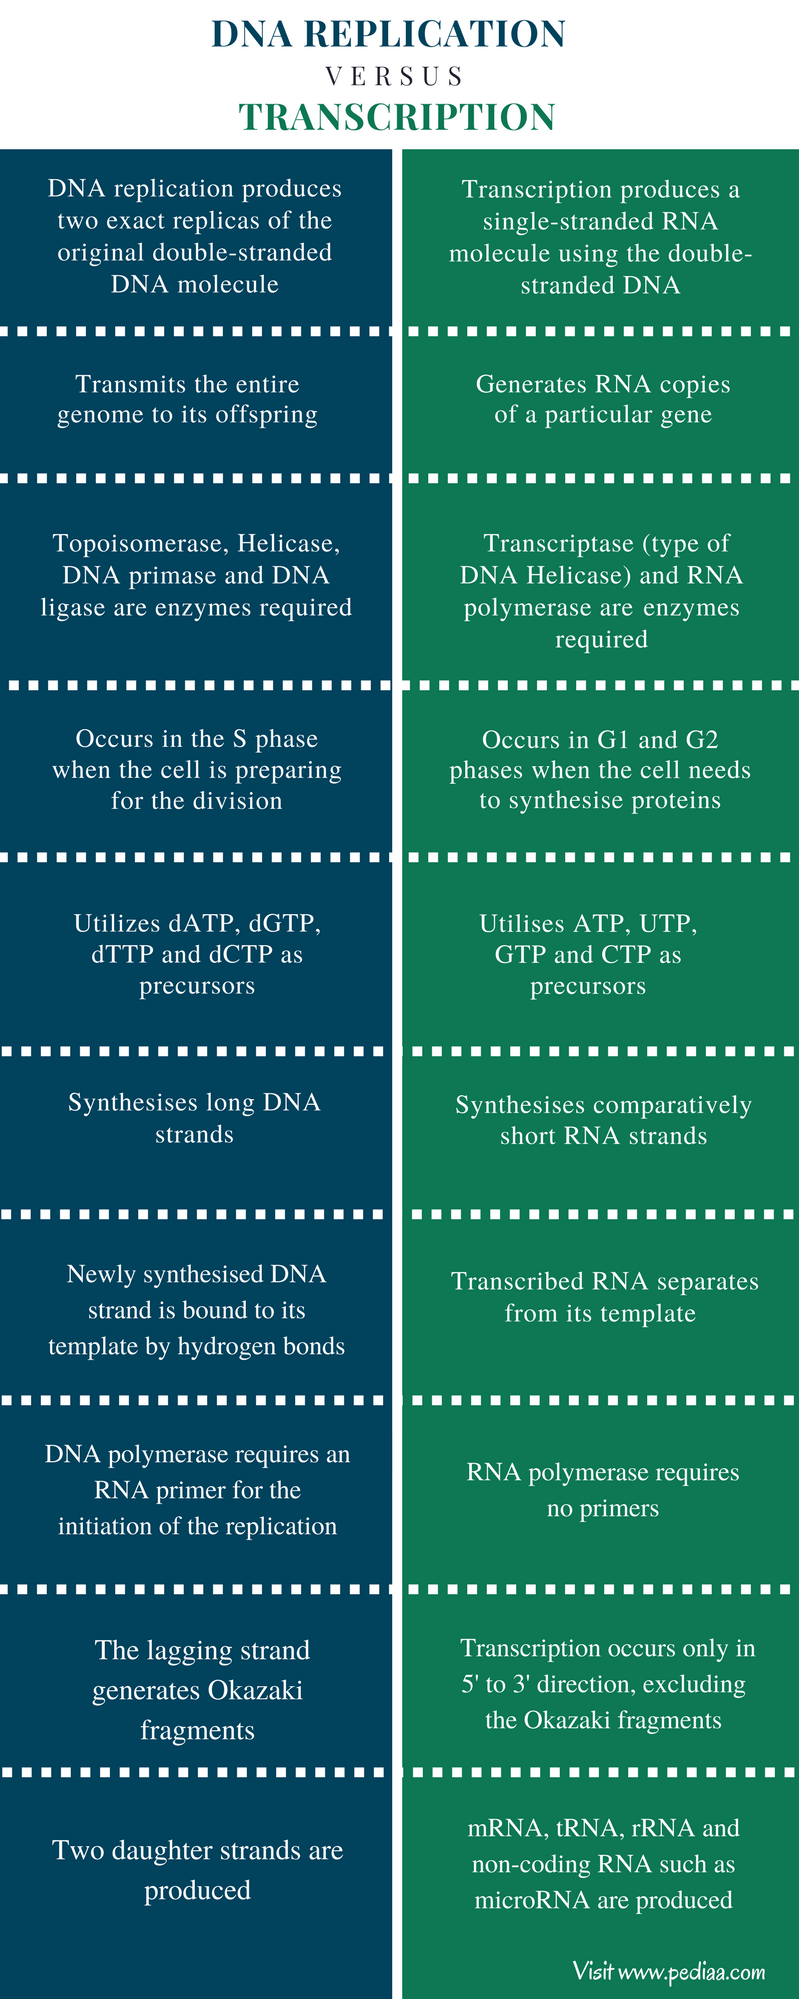 Difference Between DNA Replication vs Transcription - Comparison Summary